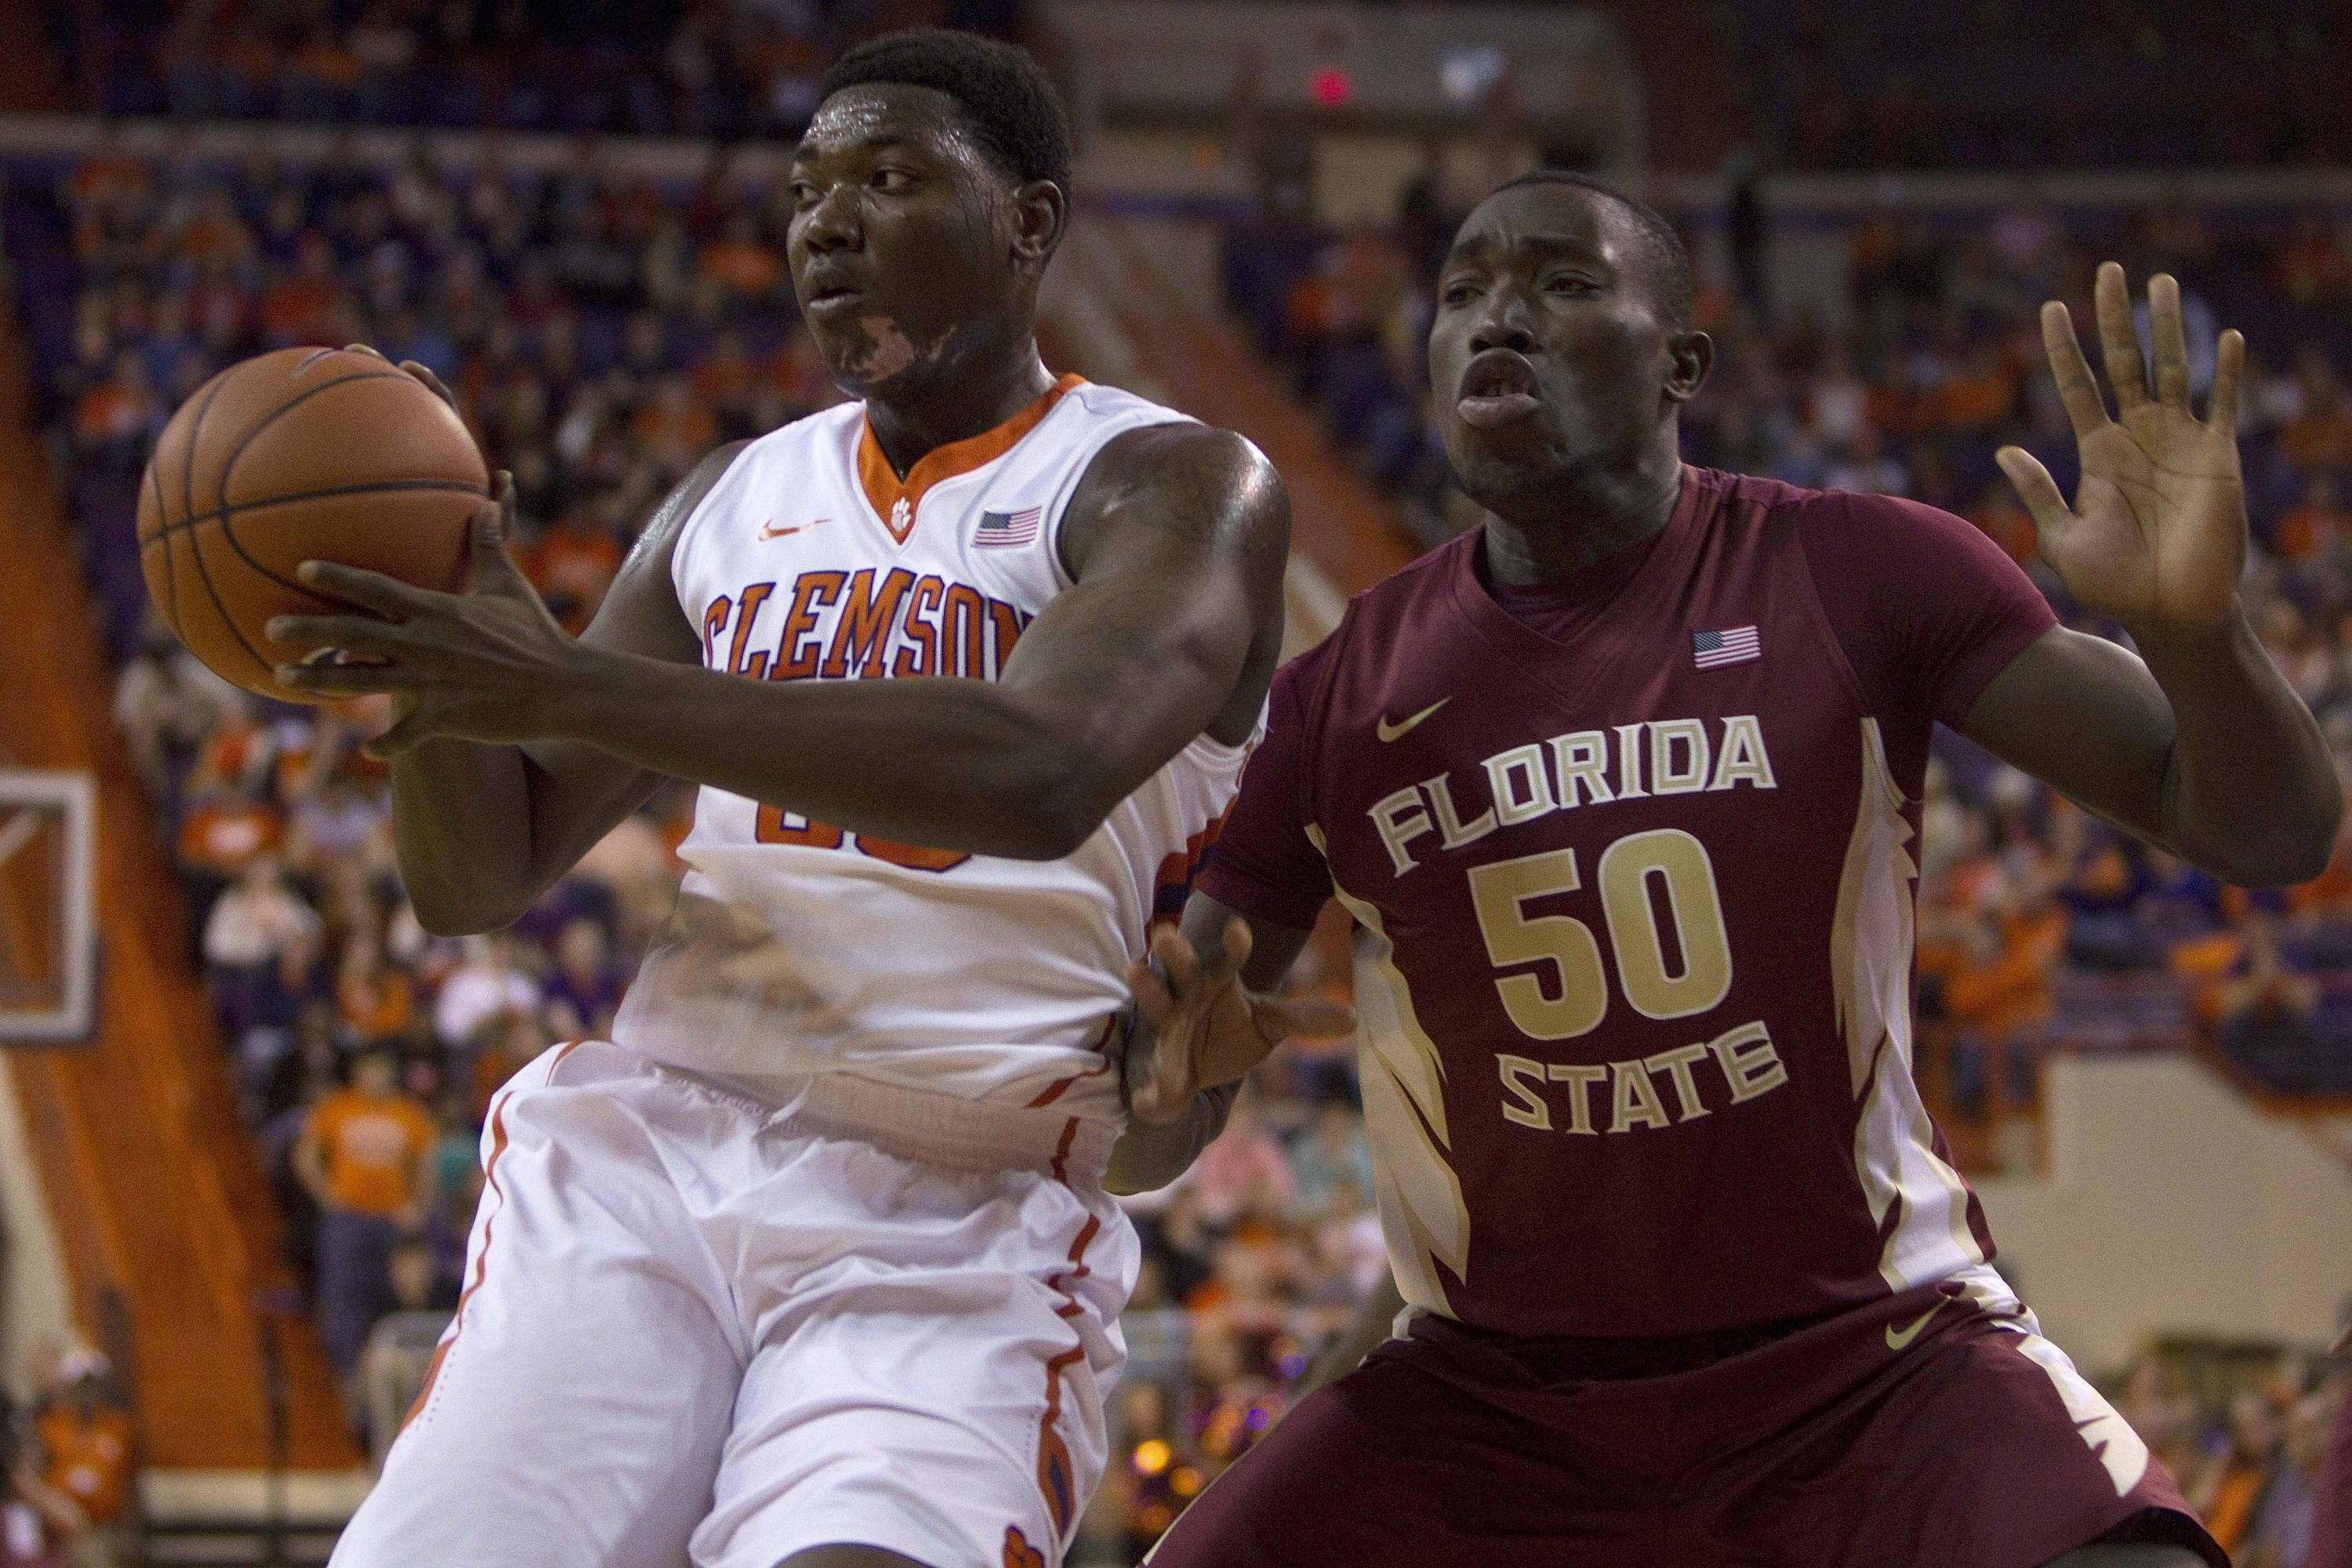 Jan 9, 2014; Clemson, SC, USA; Clemson Tigers forward/center Josh Smith (33) drives to the basket while being defended by Florida State Seminoles center Michael Ojo (50) during the first half at J.C. Littlejohn Coliseum. Mandatory Credit: Joshua S. Kelly-USA TODAY Sports